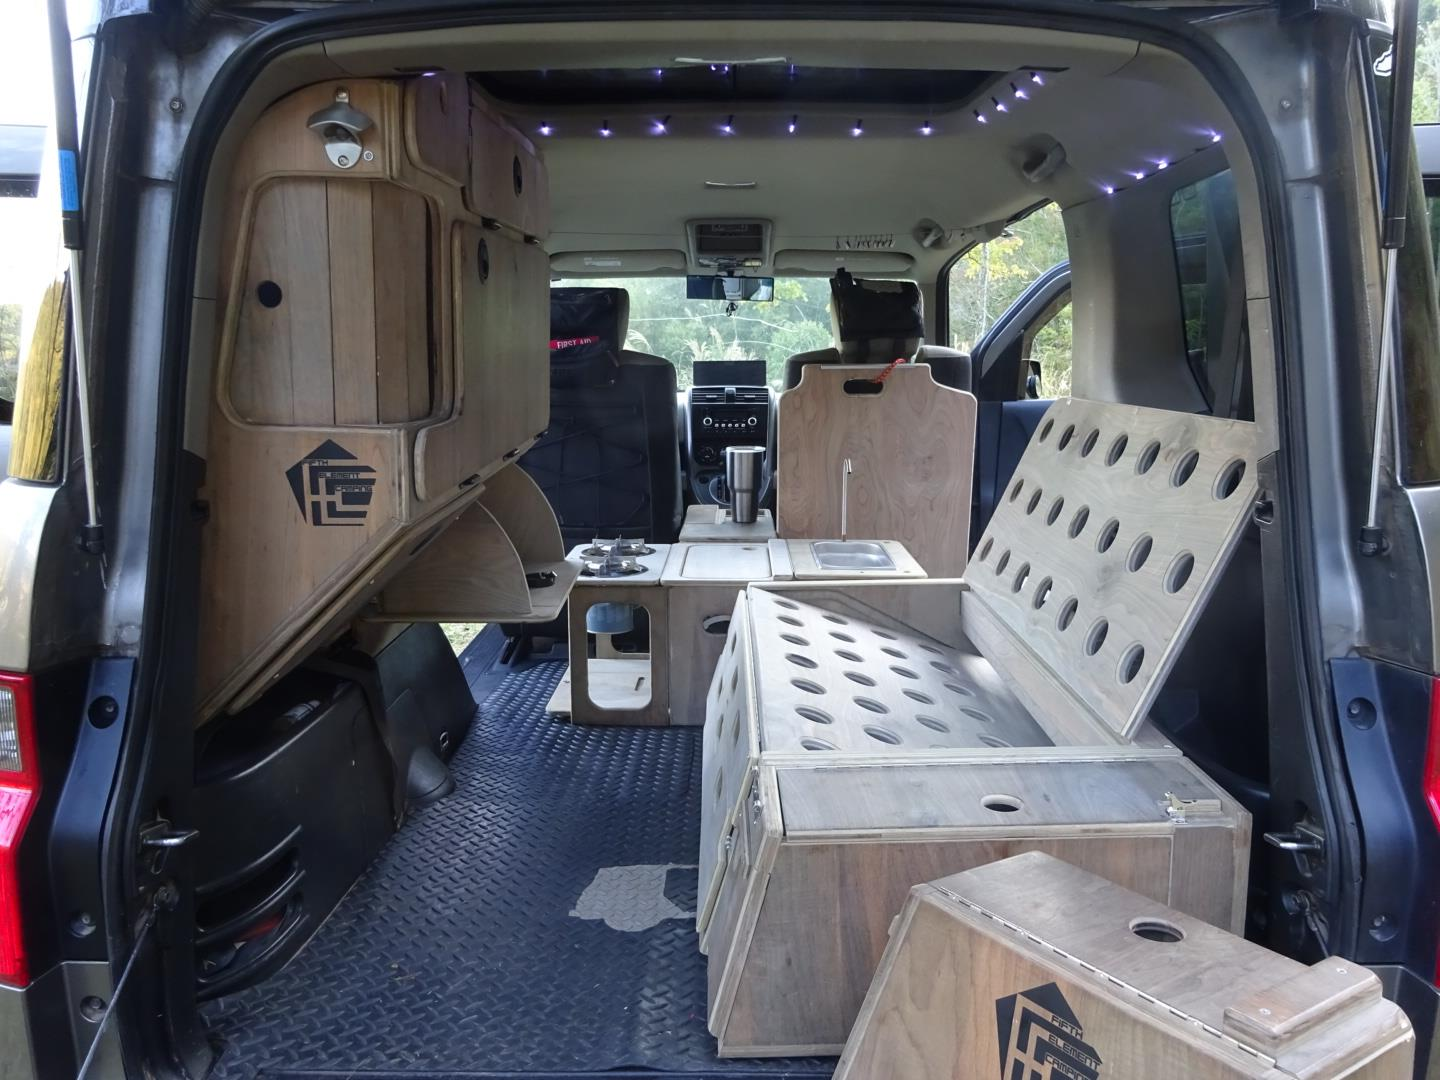 Nick Made His Own Camper From Honda Element Cheaper And More Reliable Than An Old VW Van